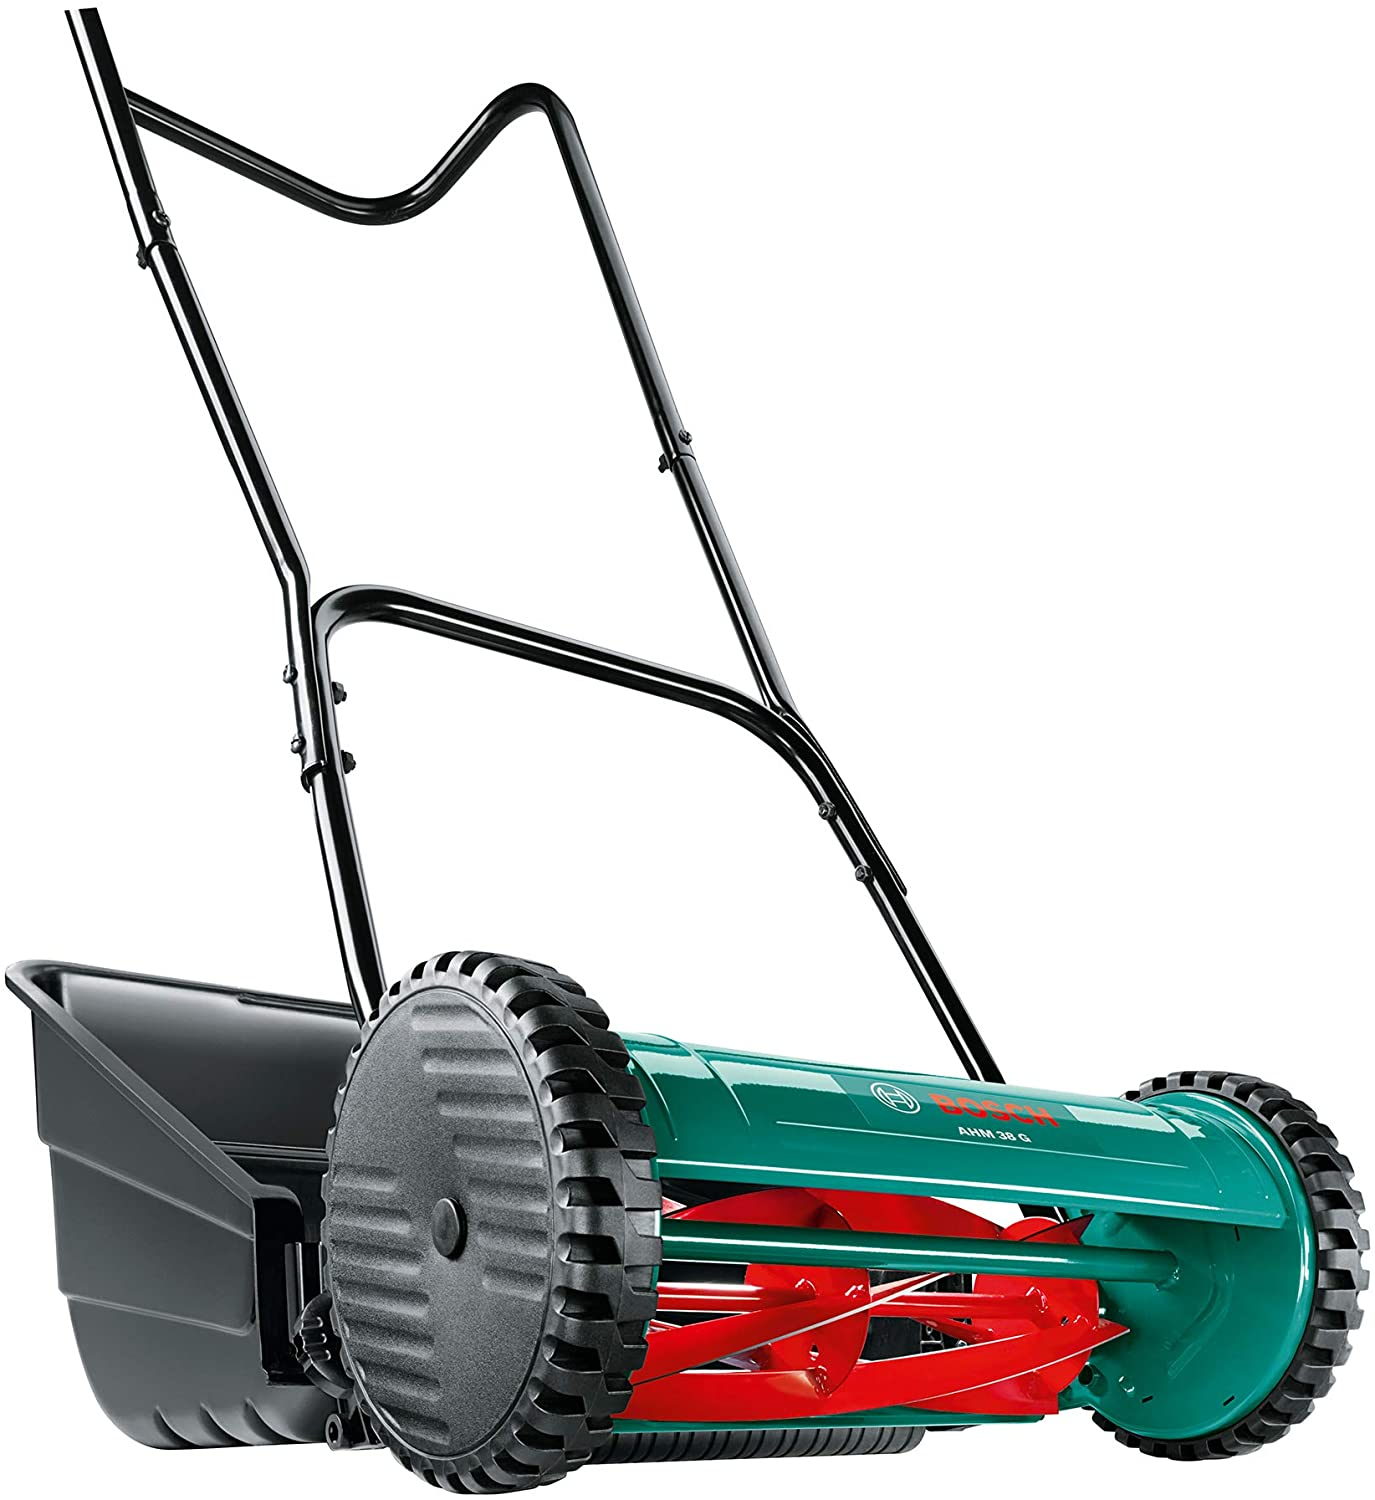 The best manual lawn Mower